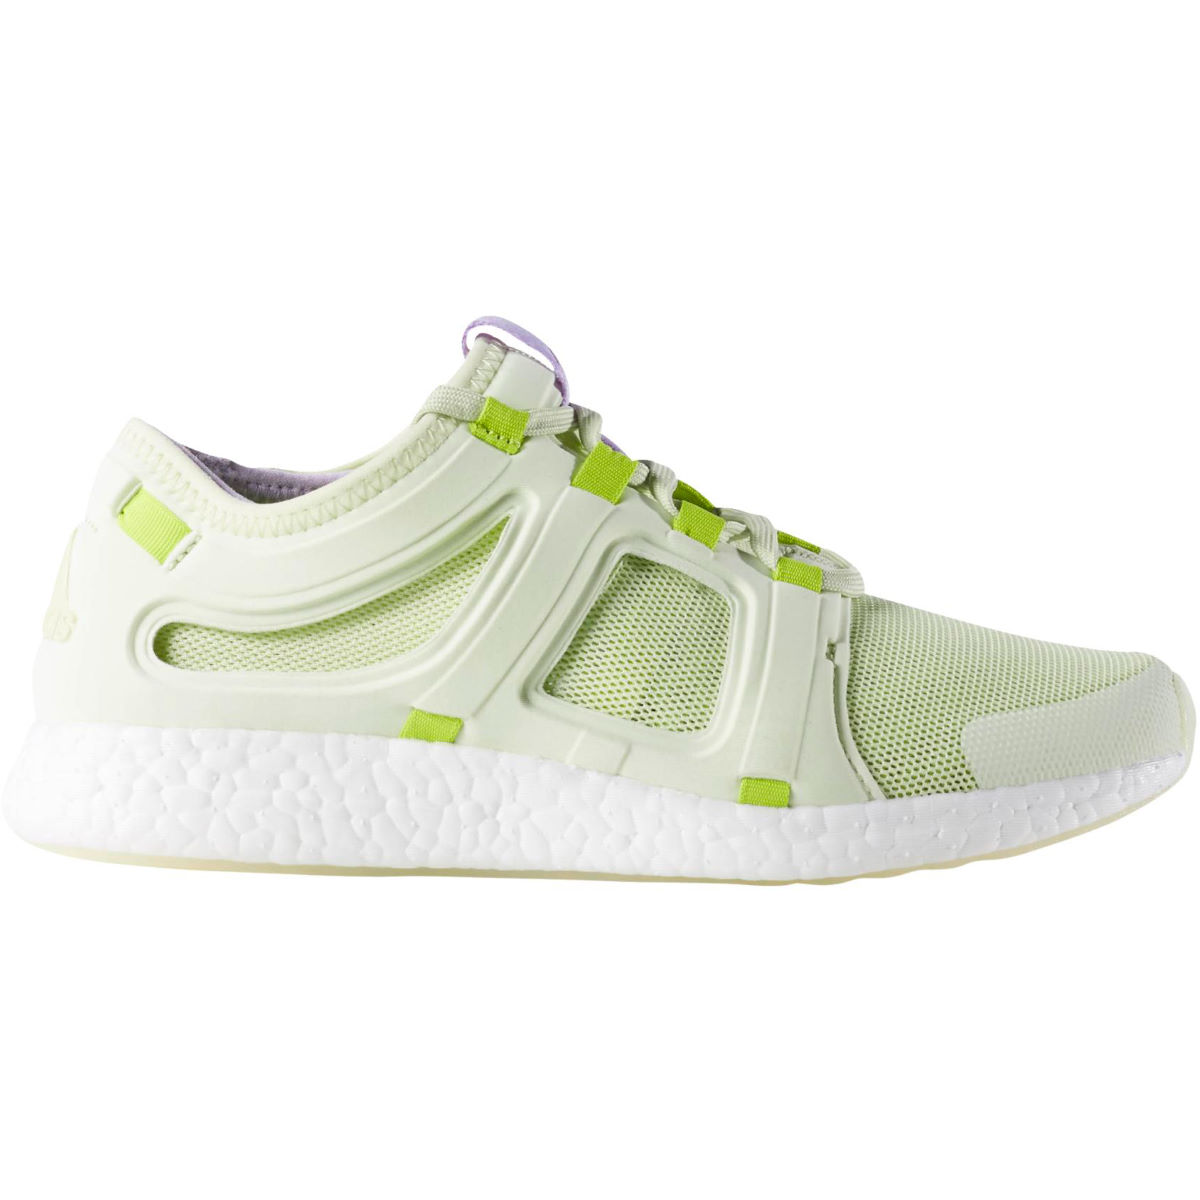 Chaussures Femme adidas -Climachill Rocket - 6 UK Halo/Slime/Purple